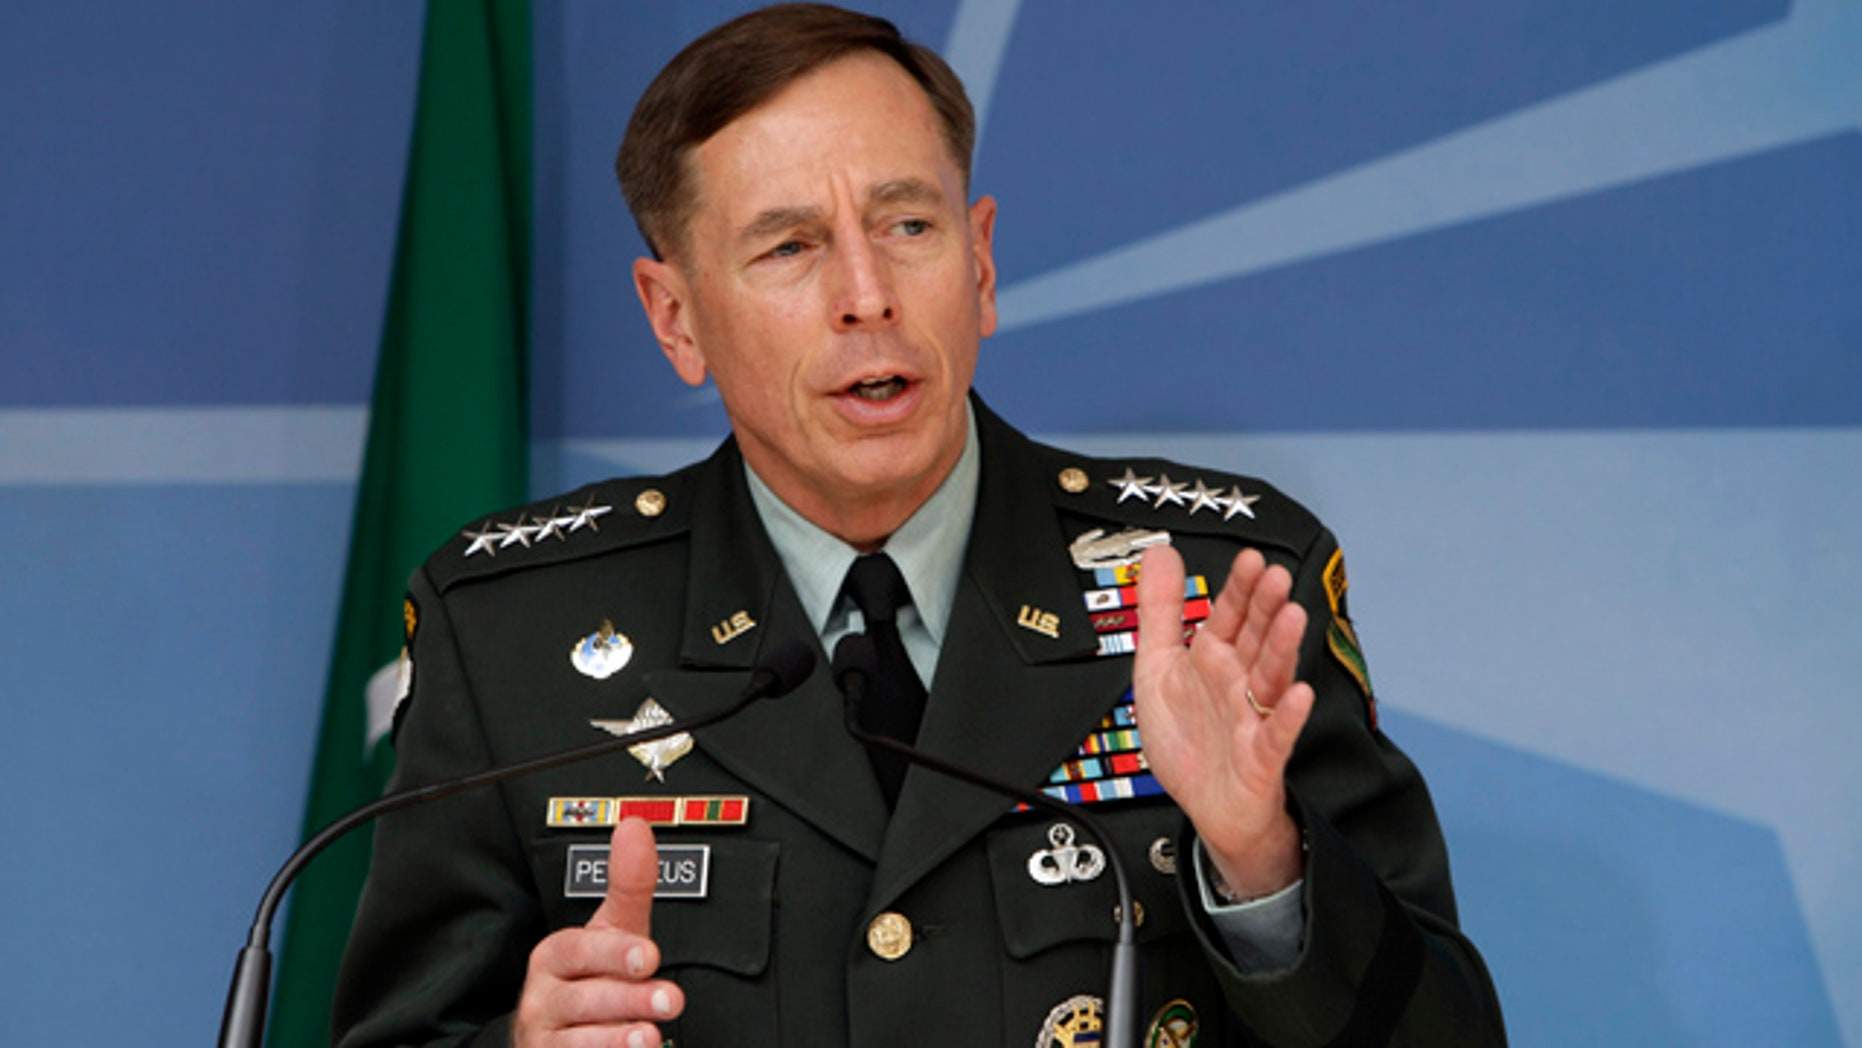 Newly appointed U.S. and NATO forces commander in Afghanistan U.S. Army General David Petraeus speaks during a media conference at NATO headquarters in Brussels on Thursday, July 1, 2010.  (AP Photo/Virginia Mayo)